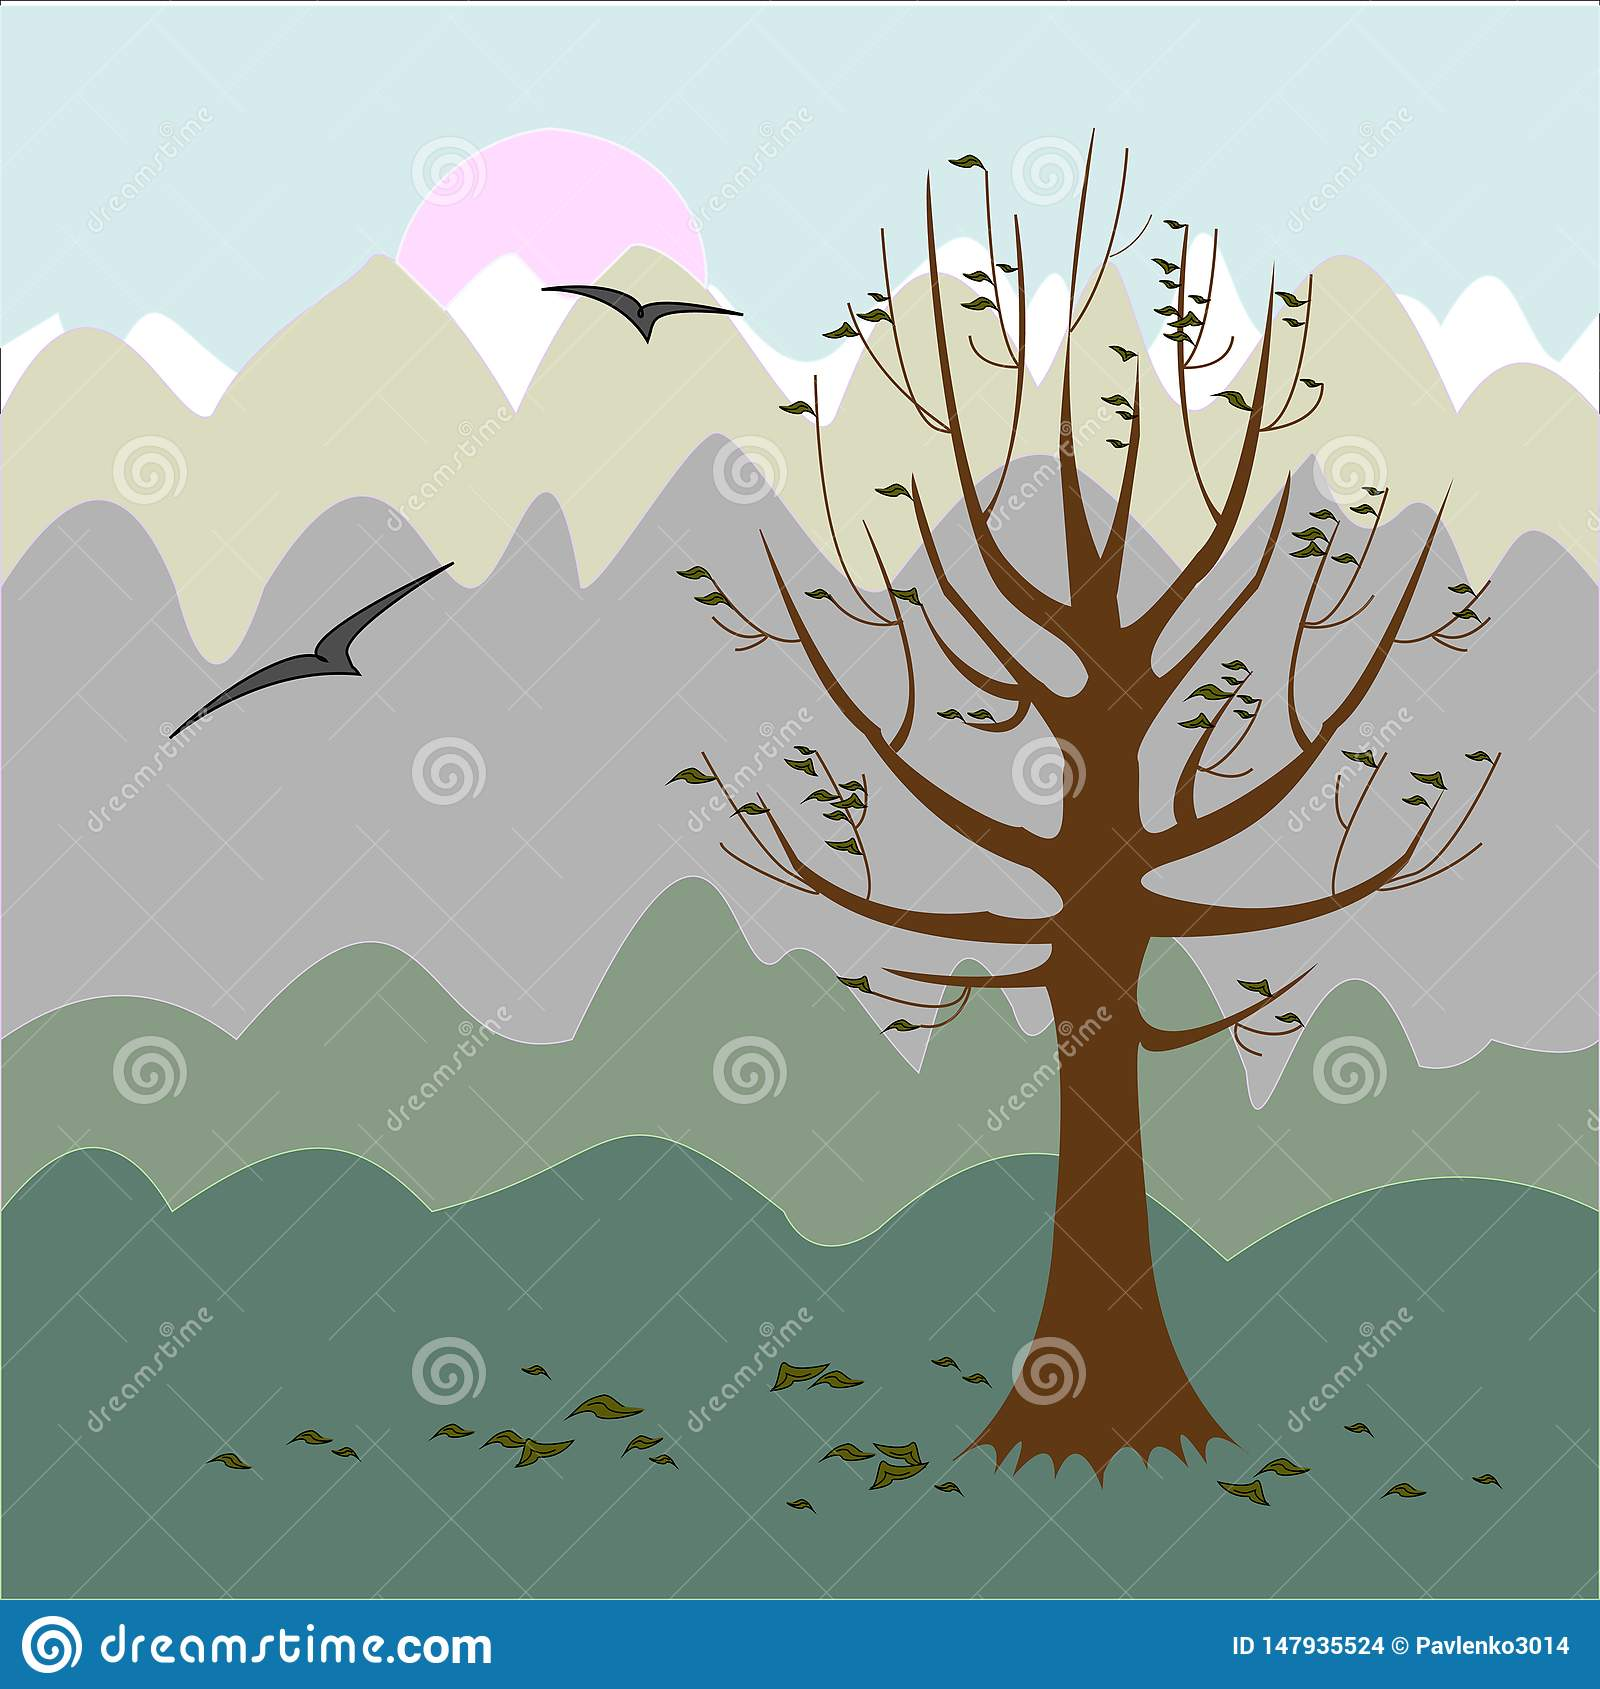 A tree without leaves. Philosophical mood. Autumn background. Vector illustration